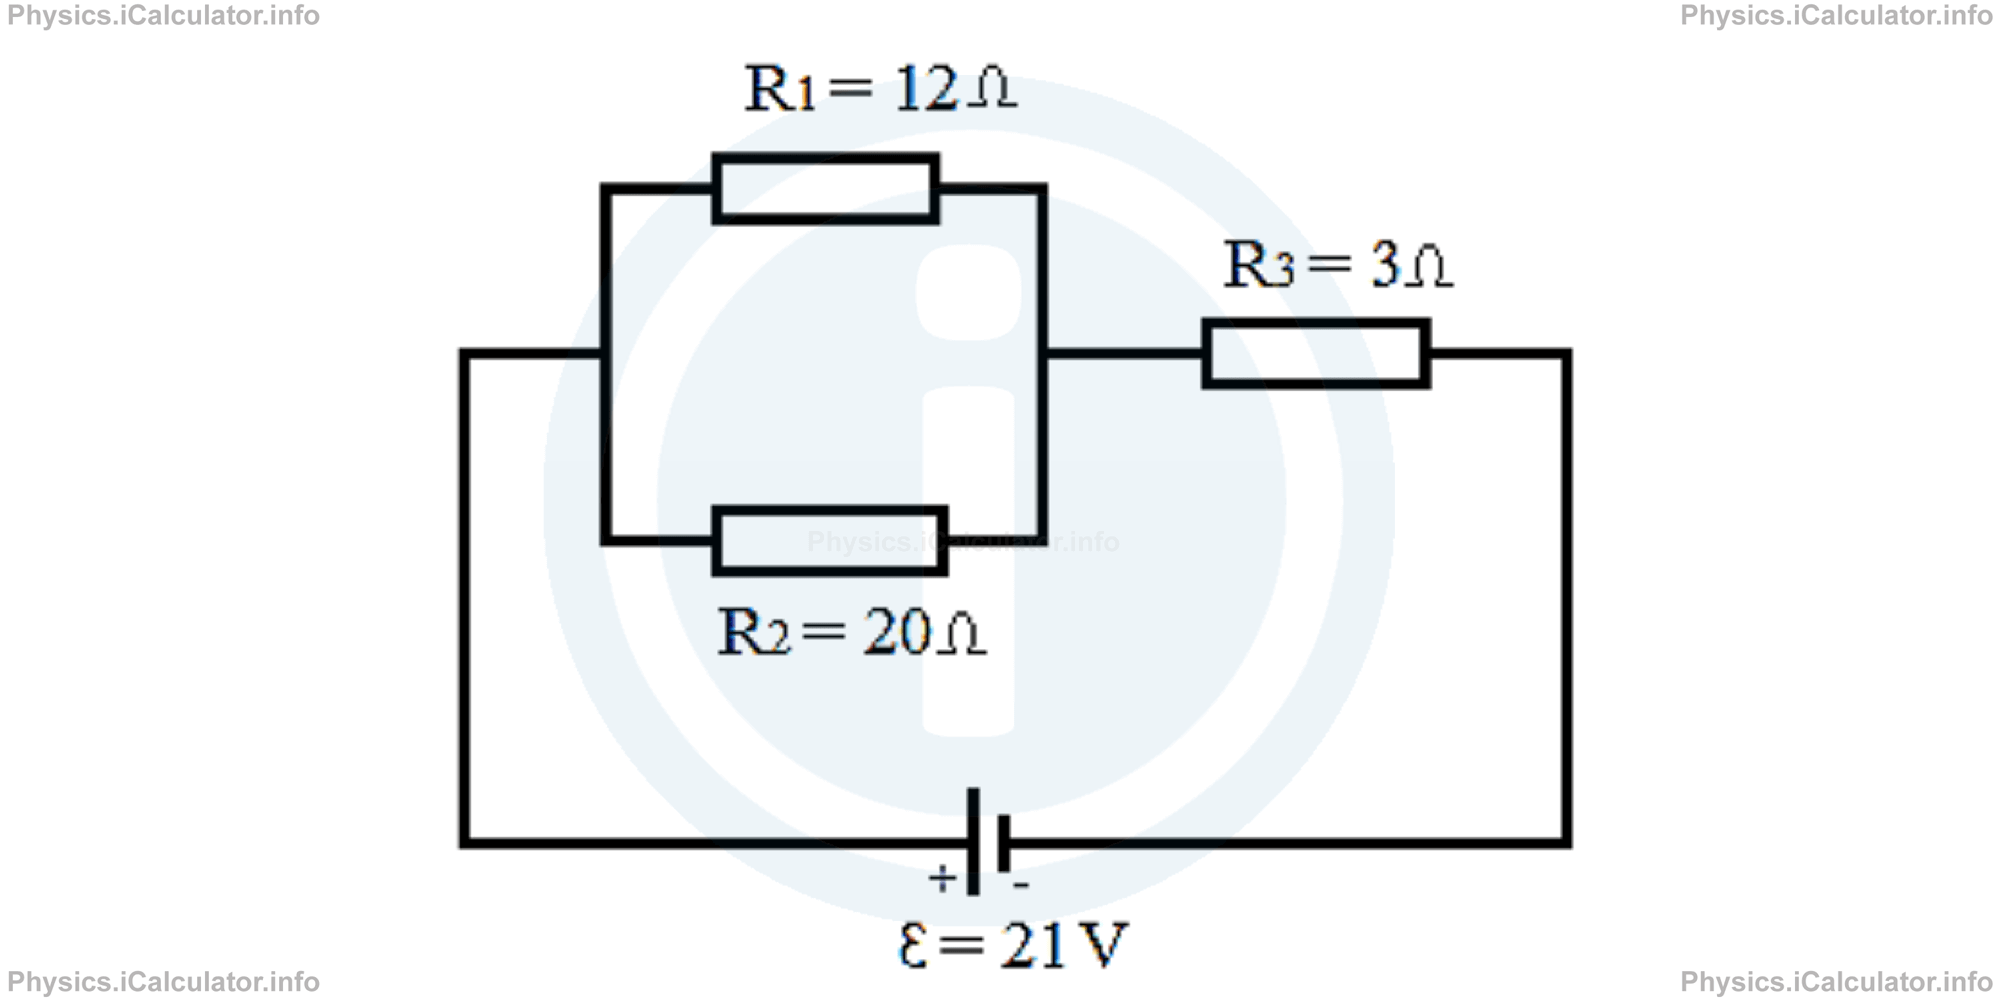 Physics Tutorials: This image provides visual information for the physics tutorial Electric Power and Efficiency